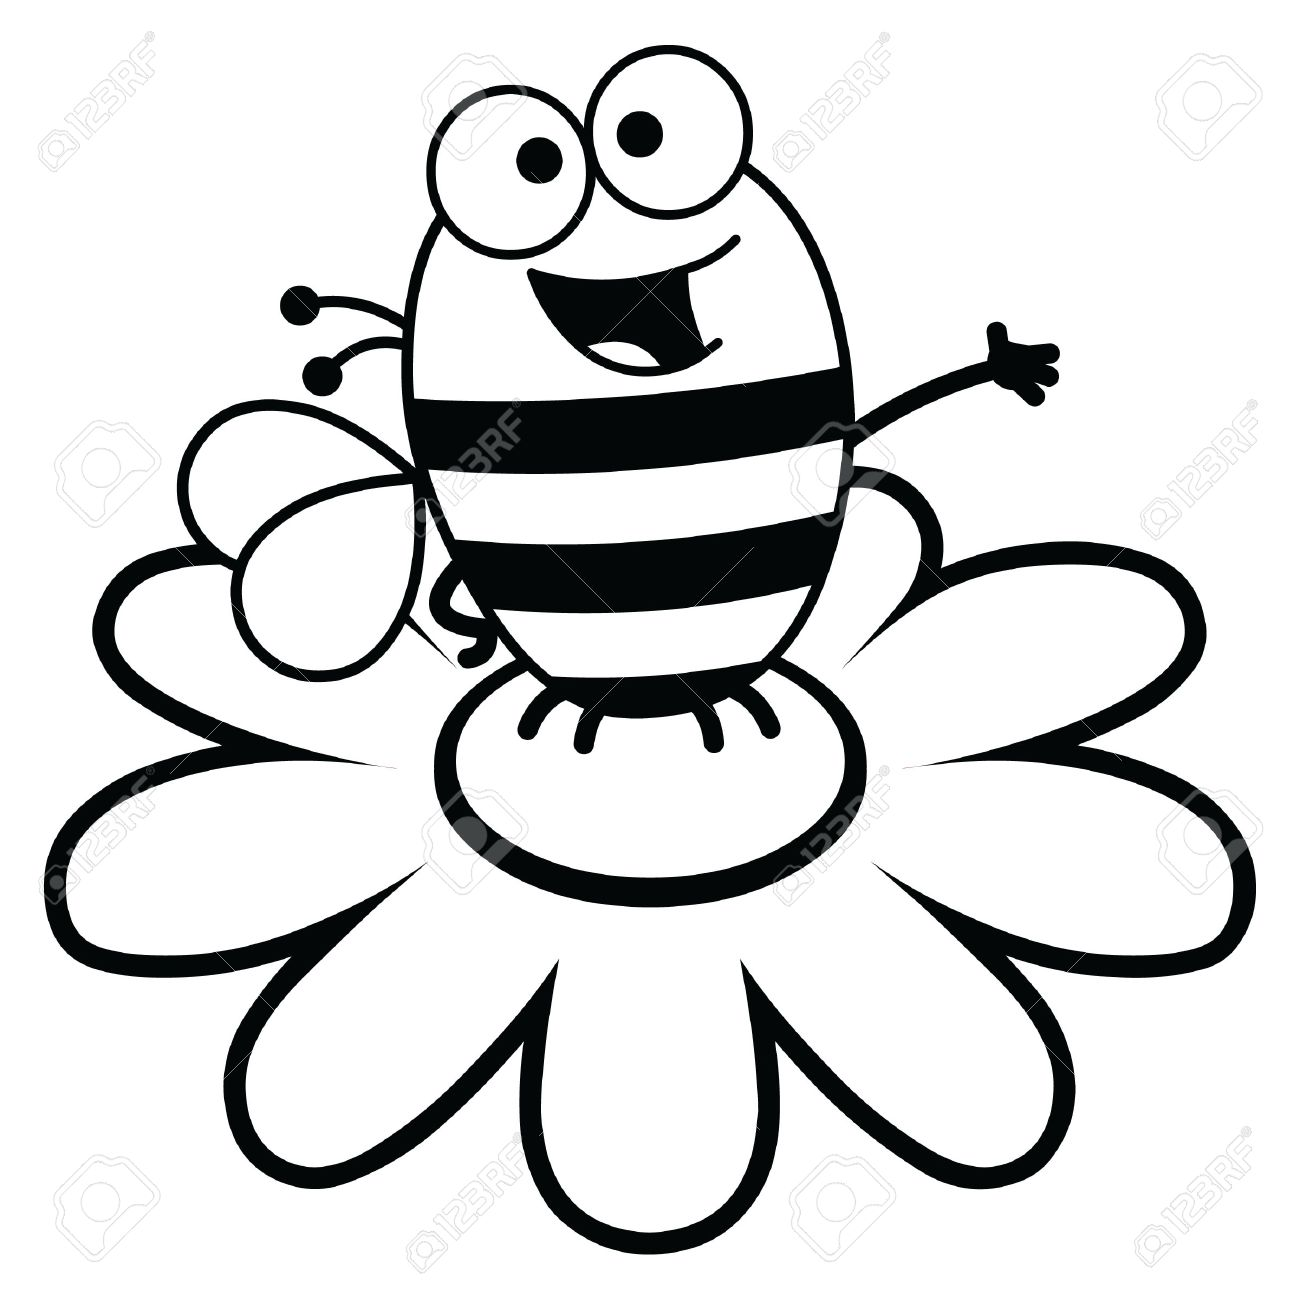 Black And White Cartoon Illustration Of A Bee Atop A Large Flower